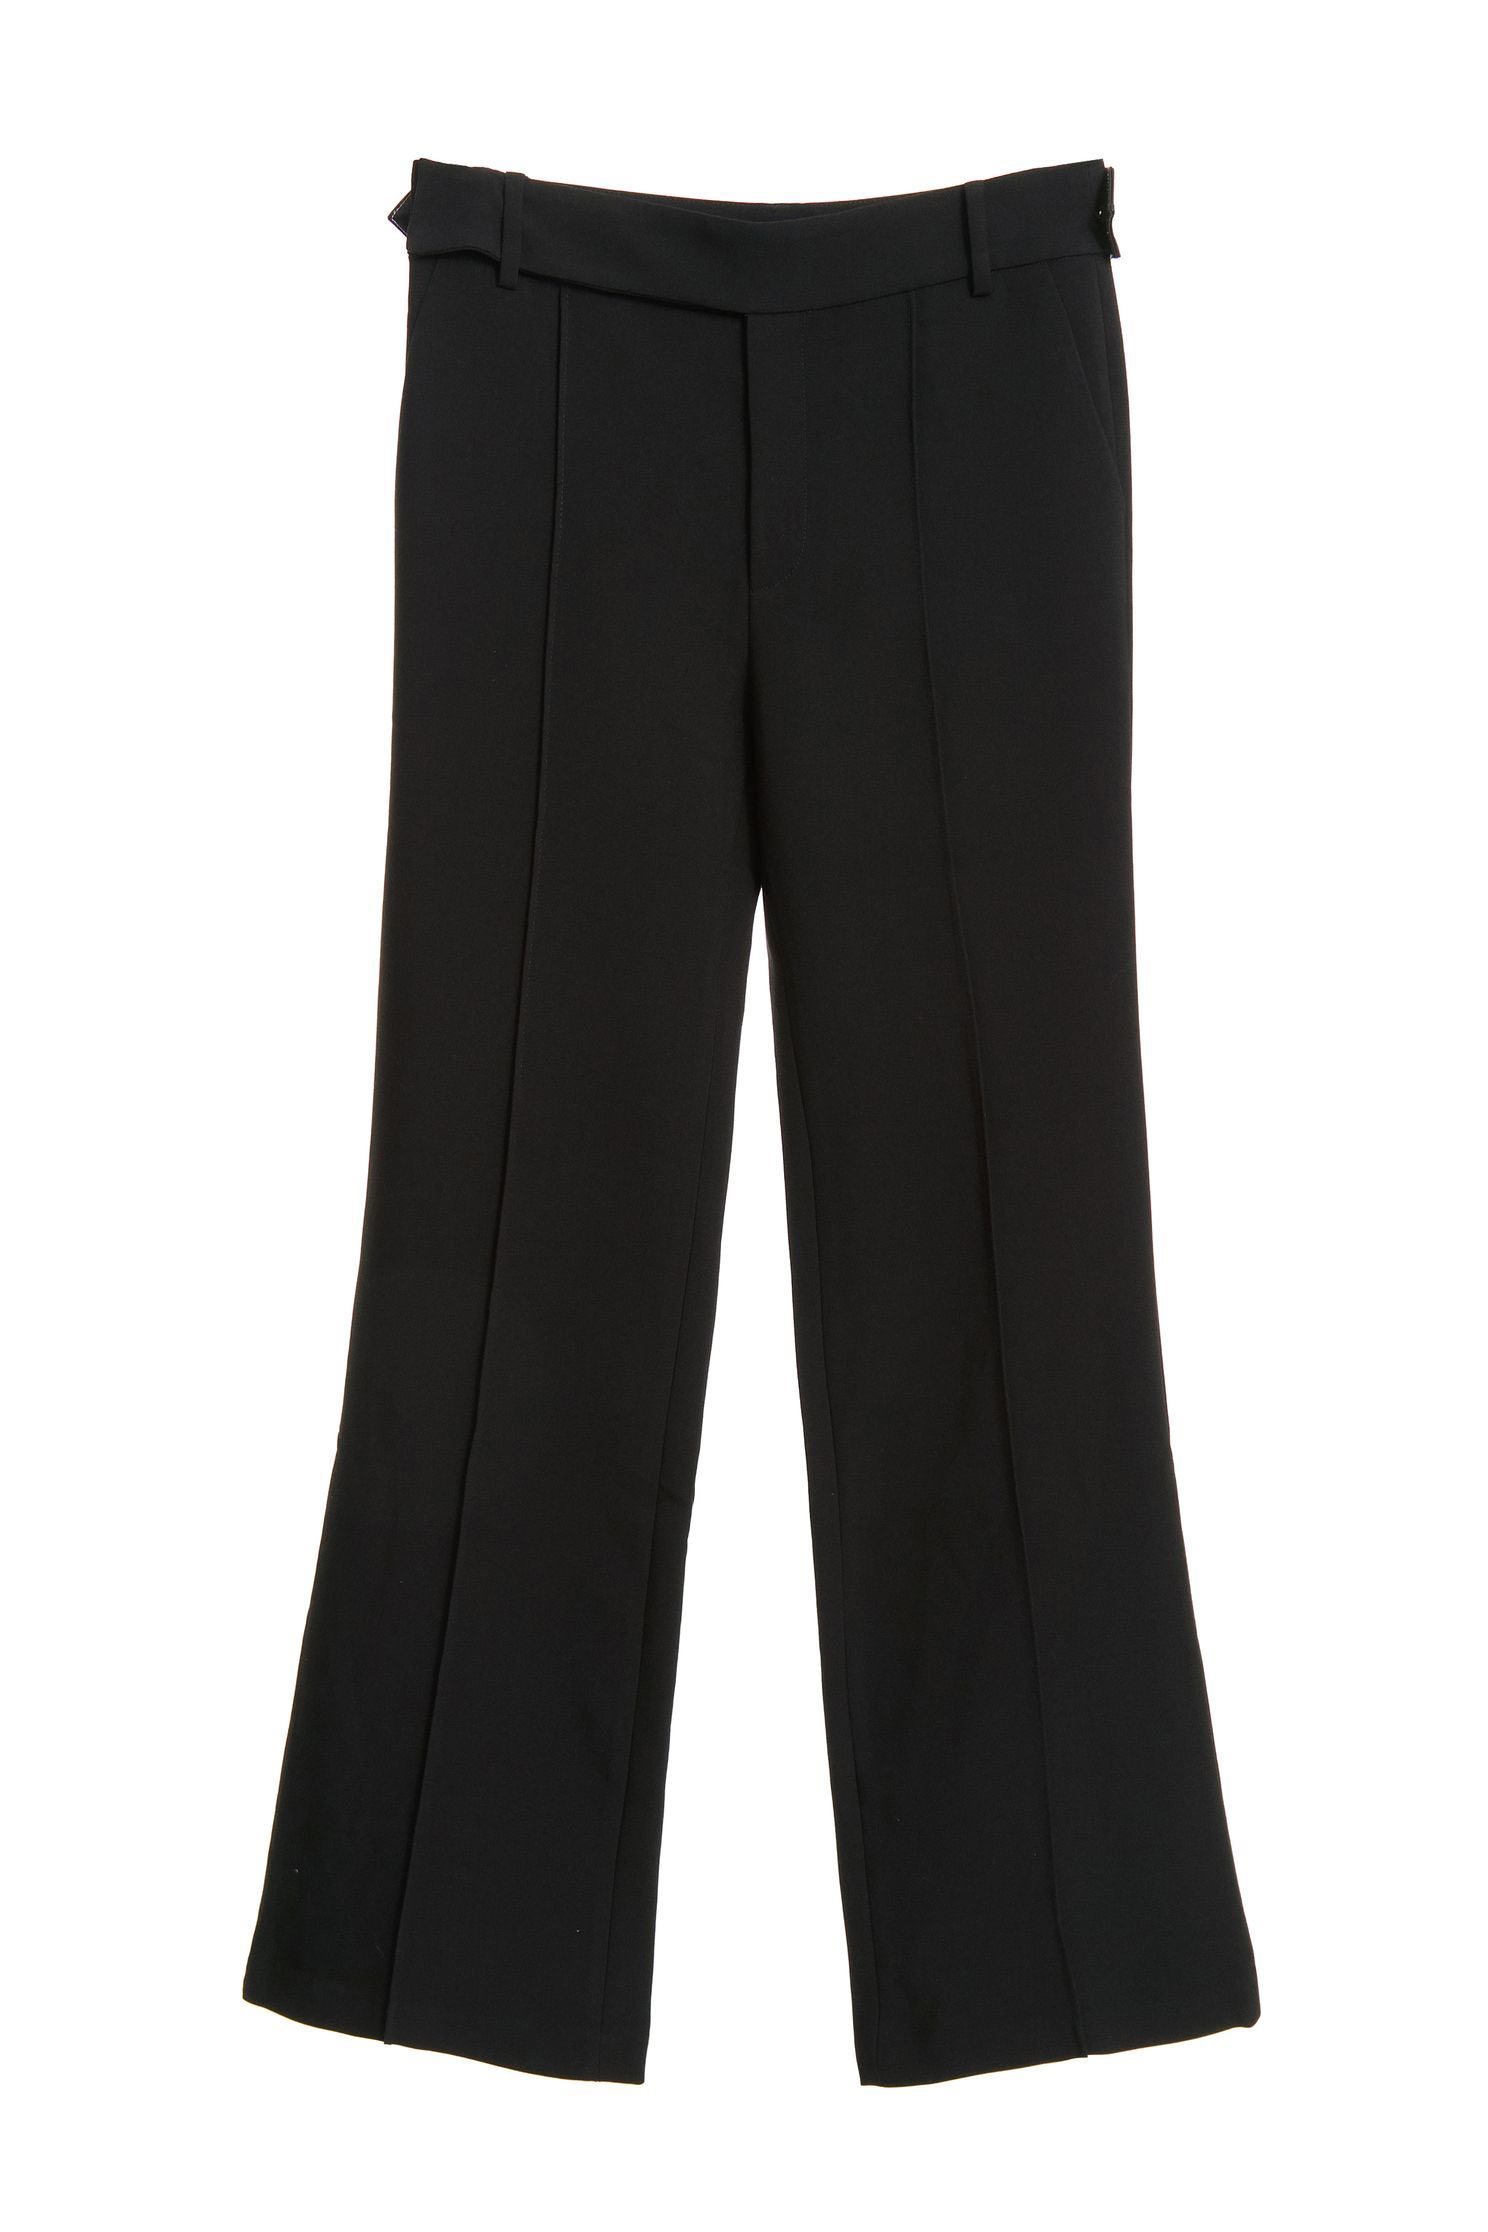 Leather strap trim trousers,Bell Bottom Jeans,皮革,i-select,Pants,長褲,Thin pants,Black trousers